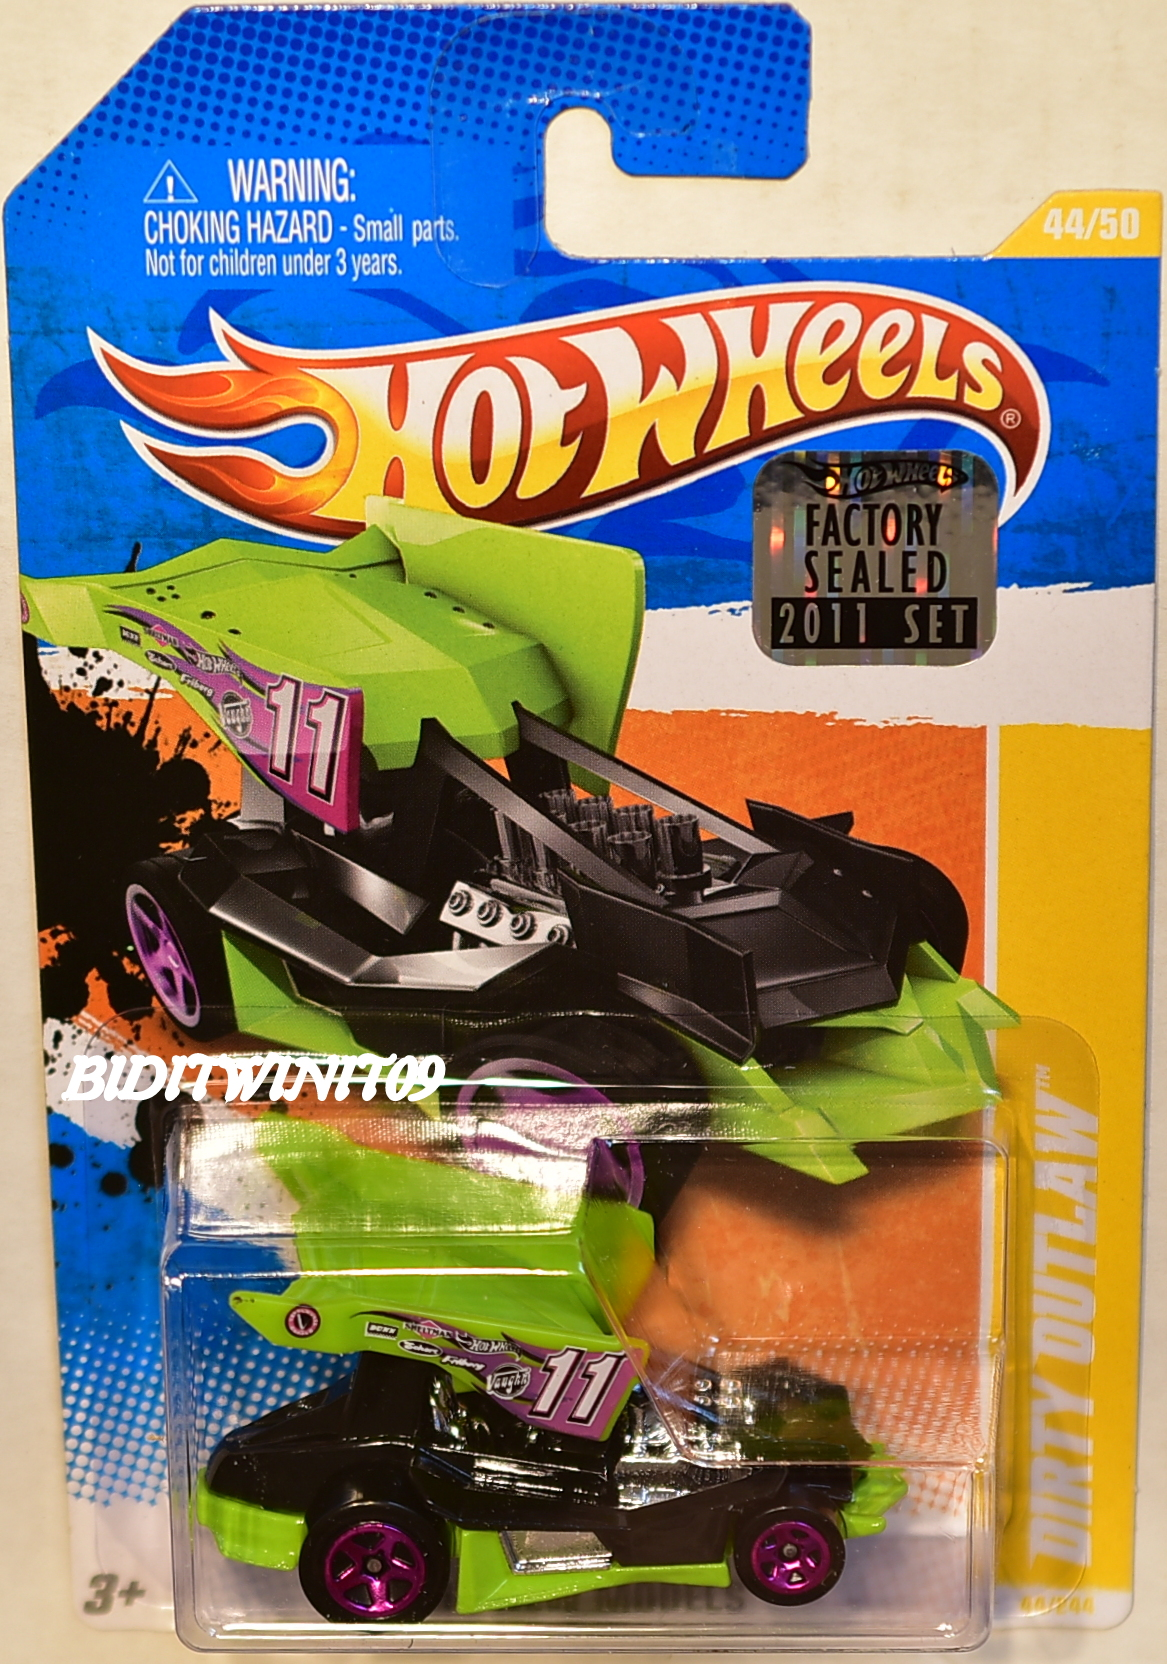 HOT WHEELS 2011 NEW MODELS DIRTY OUTLAW #44/50 FACTORY SEALED